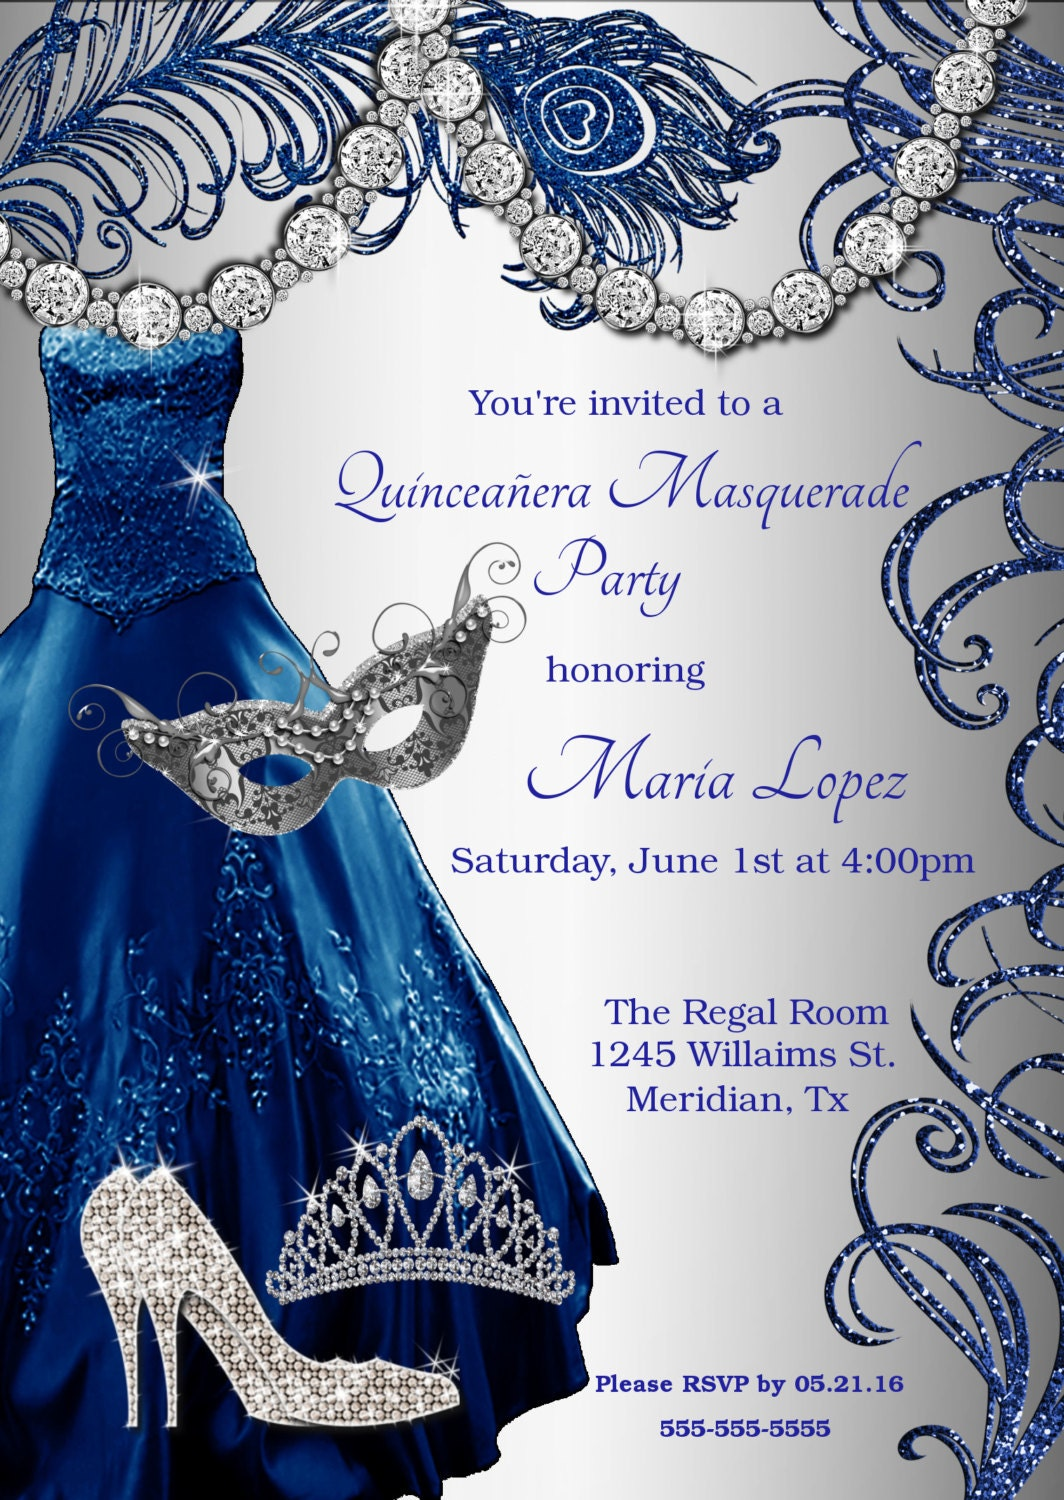 Quinceanera Masquerade Invitation,Sweet 15 Invitations,Sweet ...